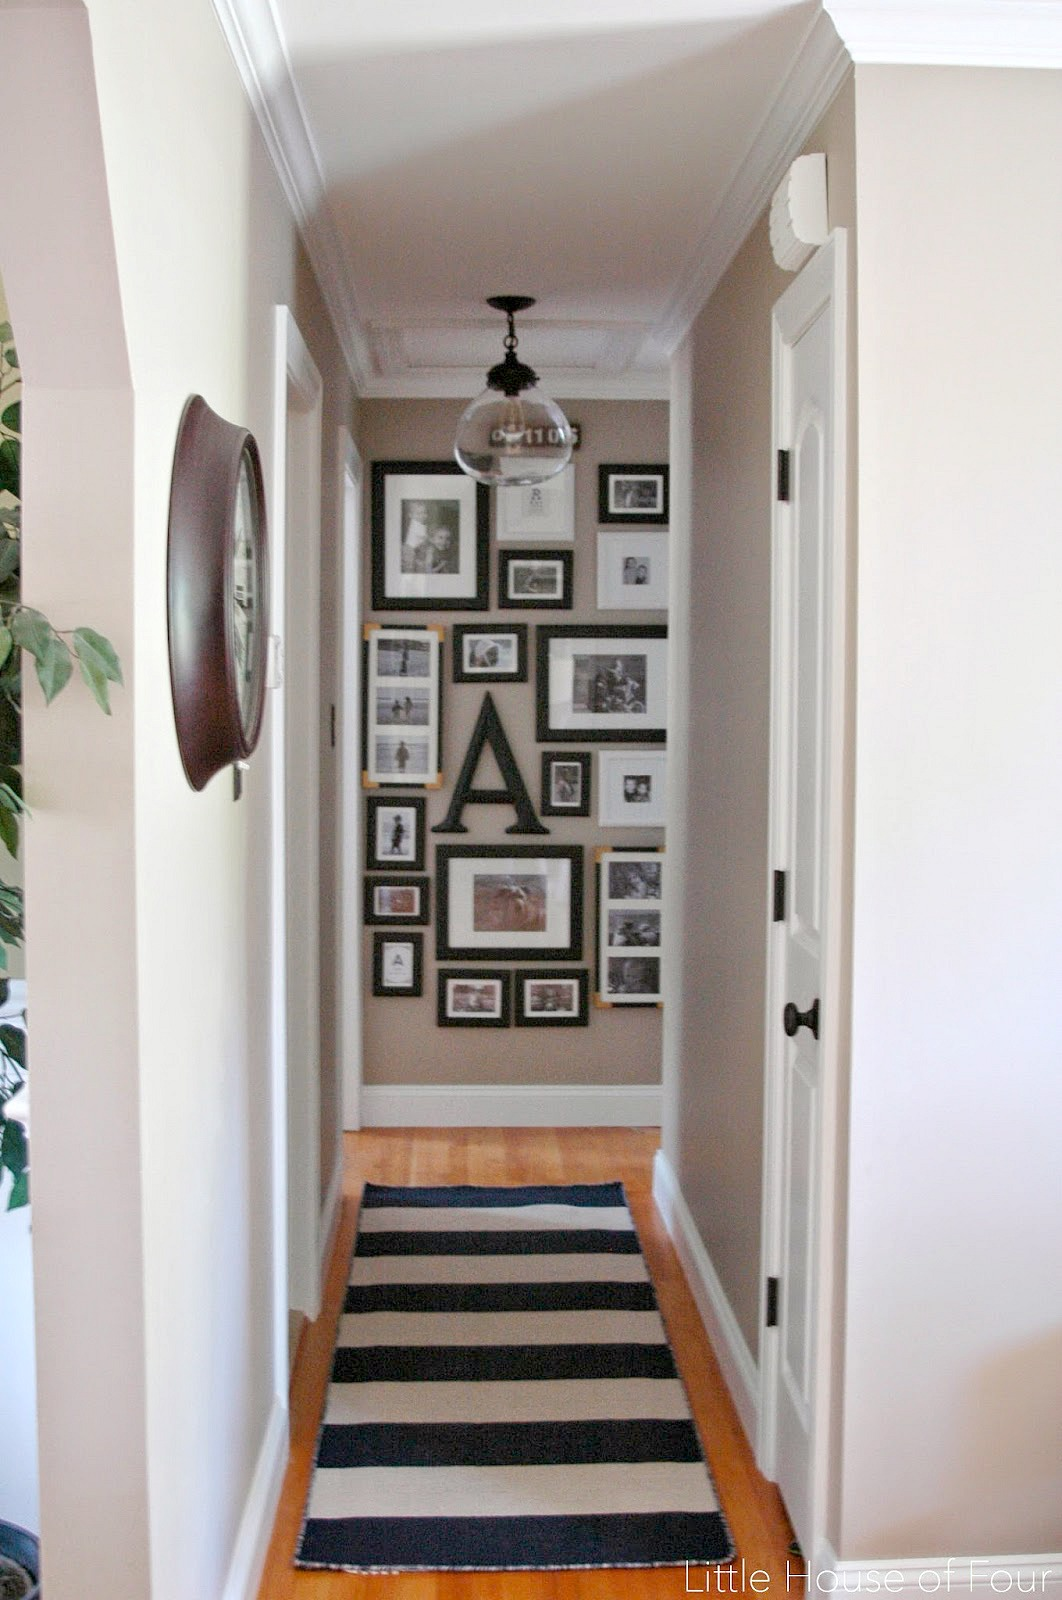 Updated Hall Gallery Wall